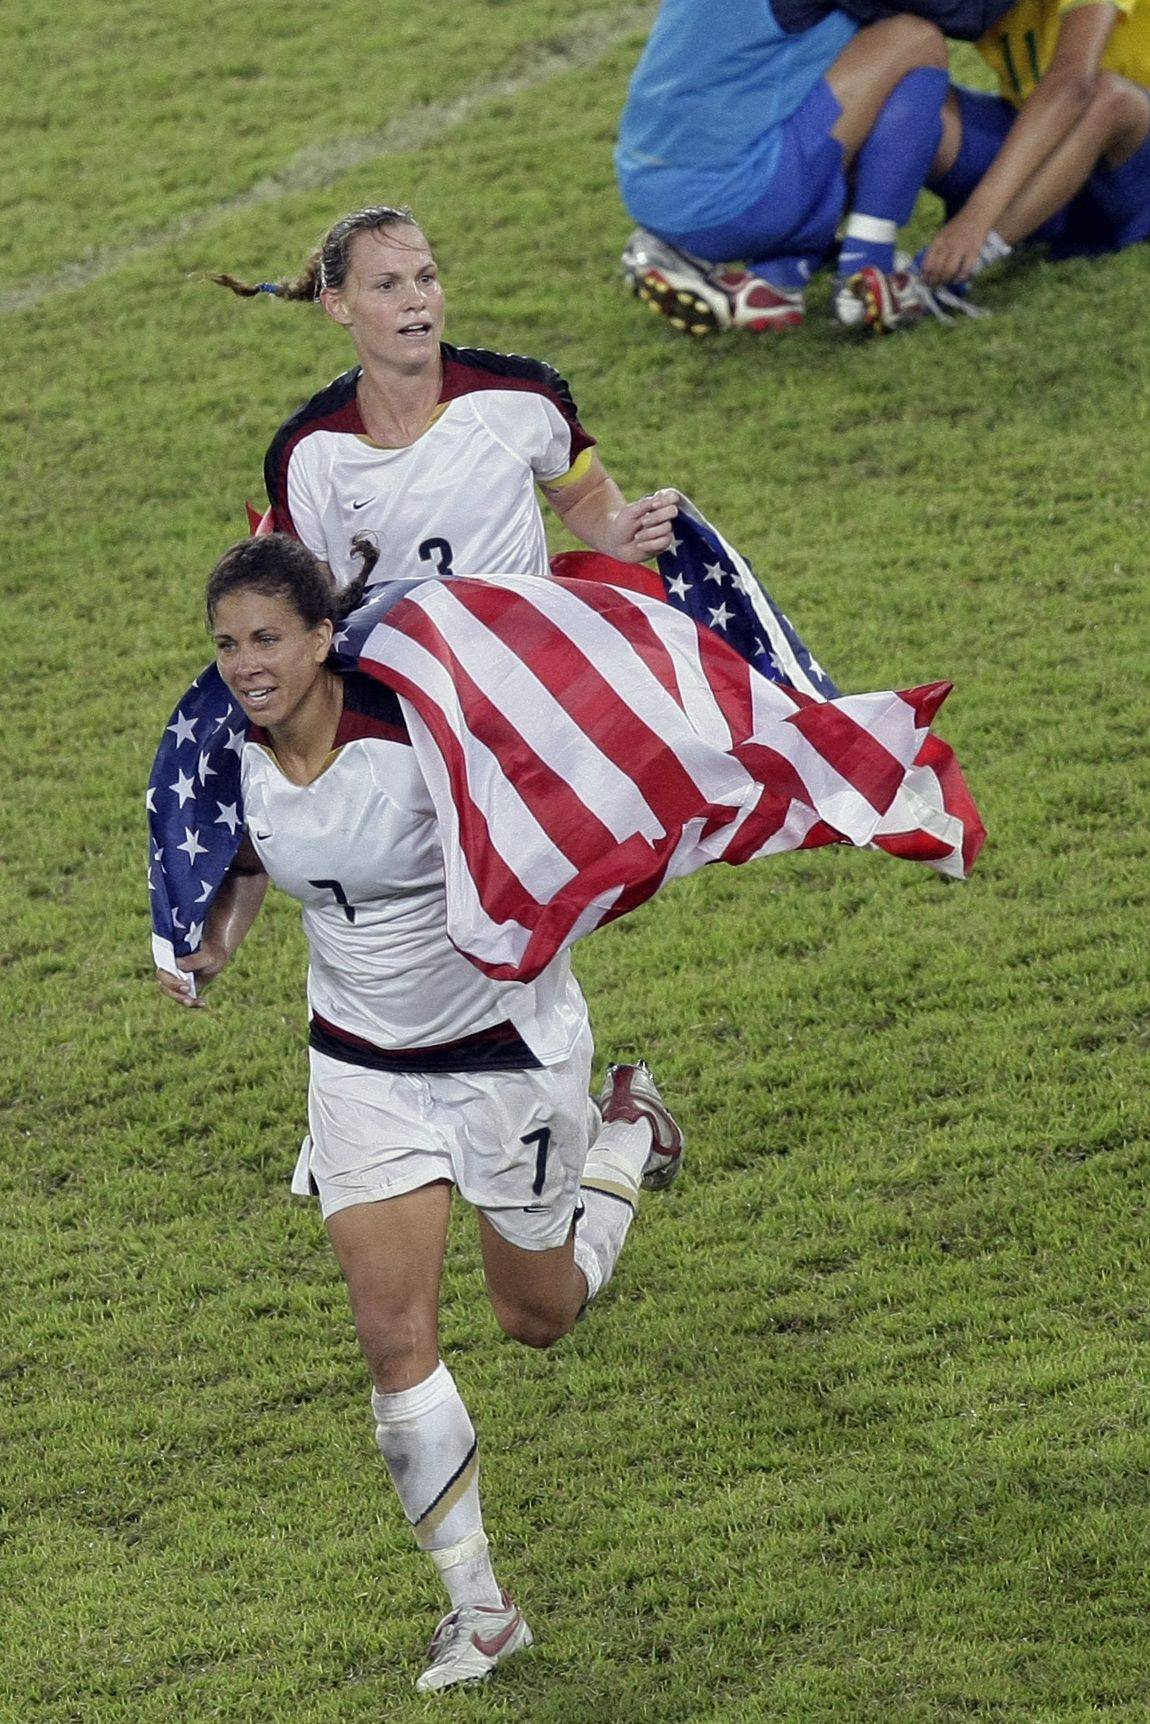 Shannon Boxx, now with the Chicago Red Stars, celebrates after the United States defeated Brazil in the women's soccer gold-medal match at the Beijing Olympics in 2008.